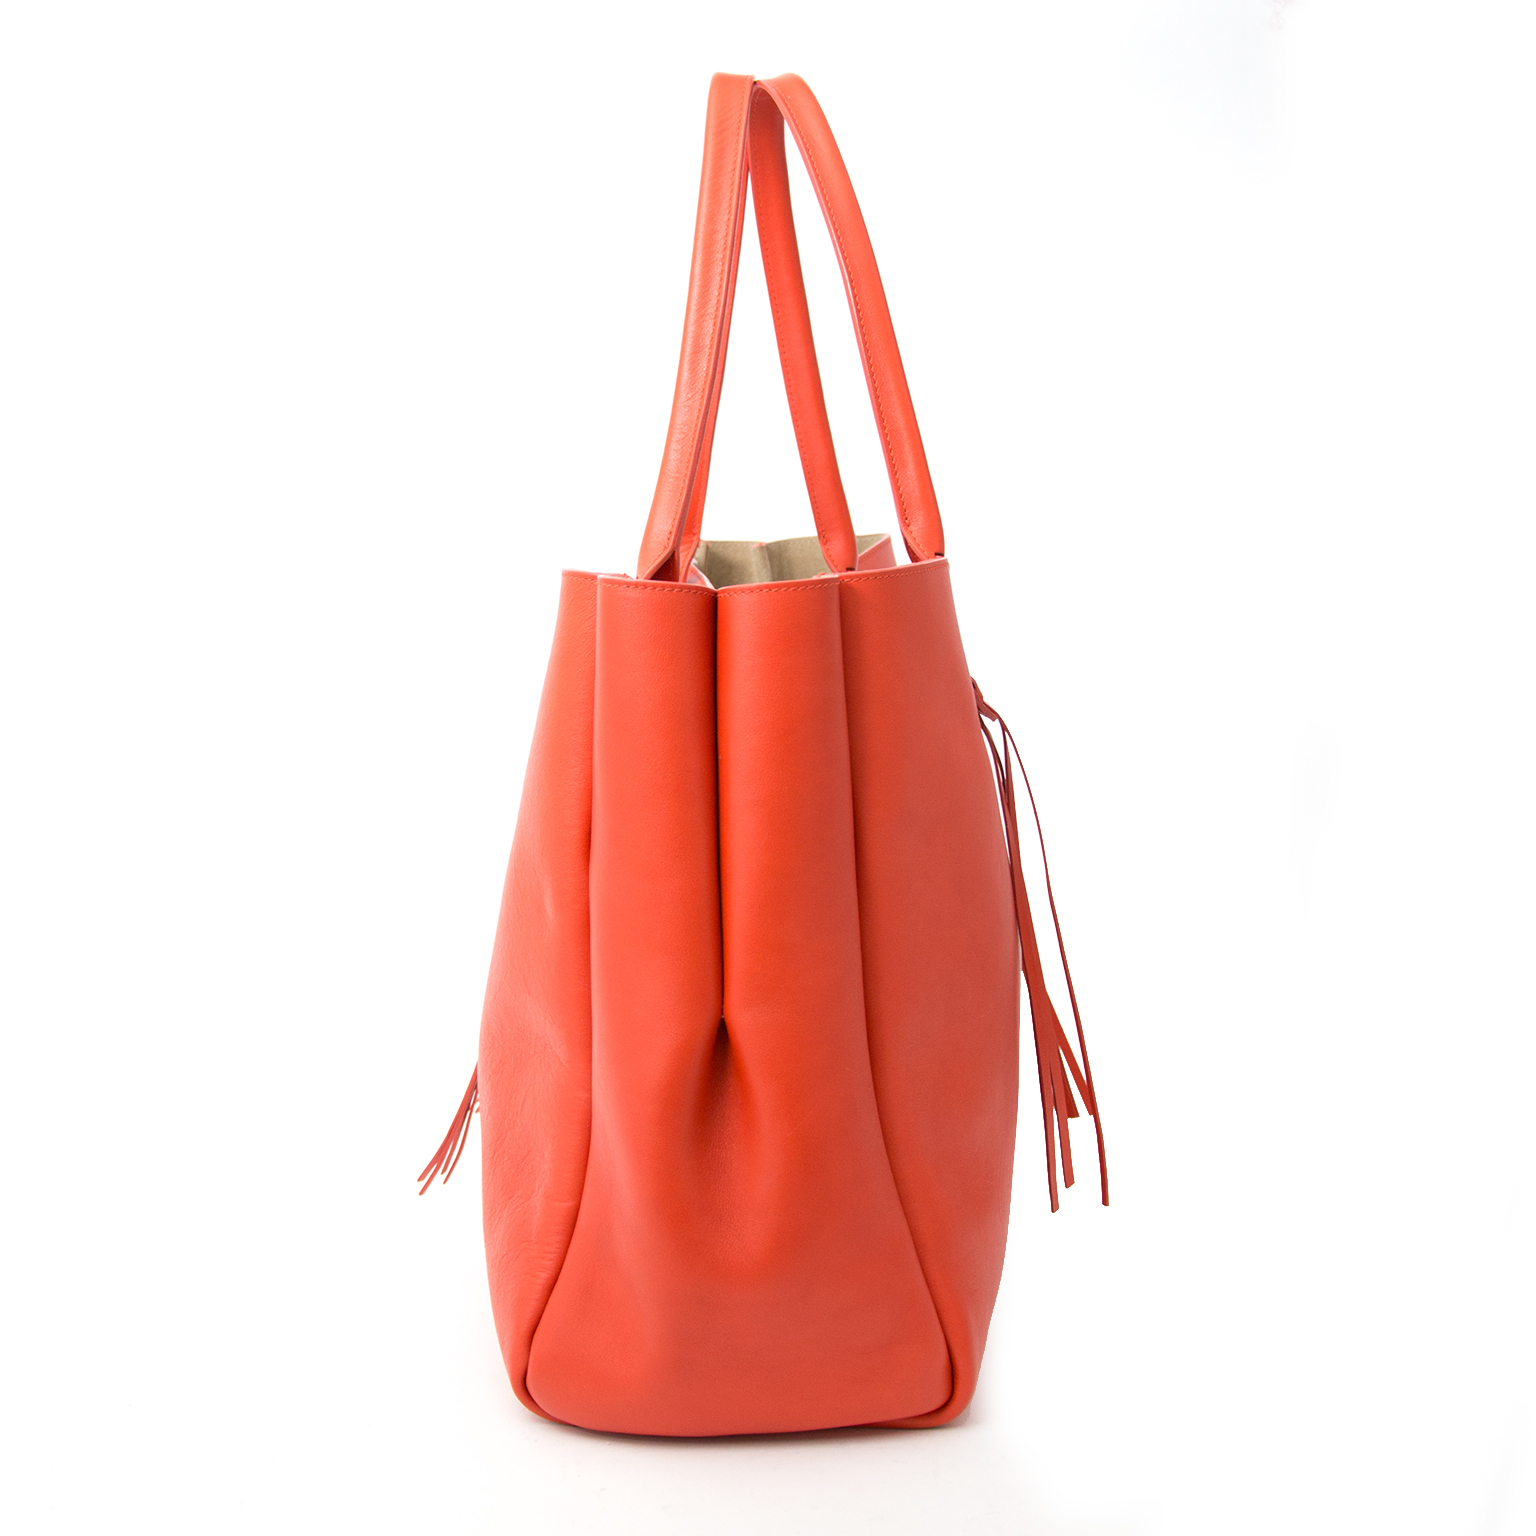 shop online at the best price Lanvin Orange Fringed The Shopper